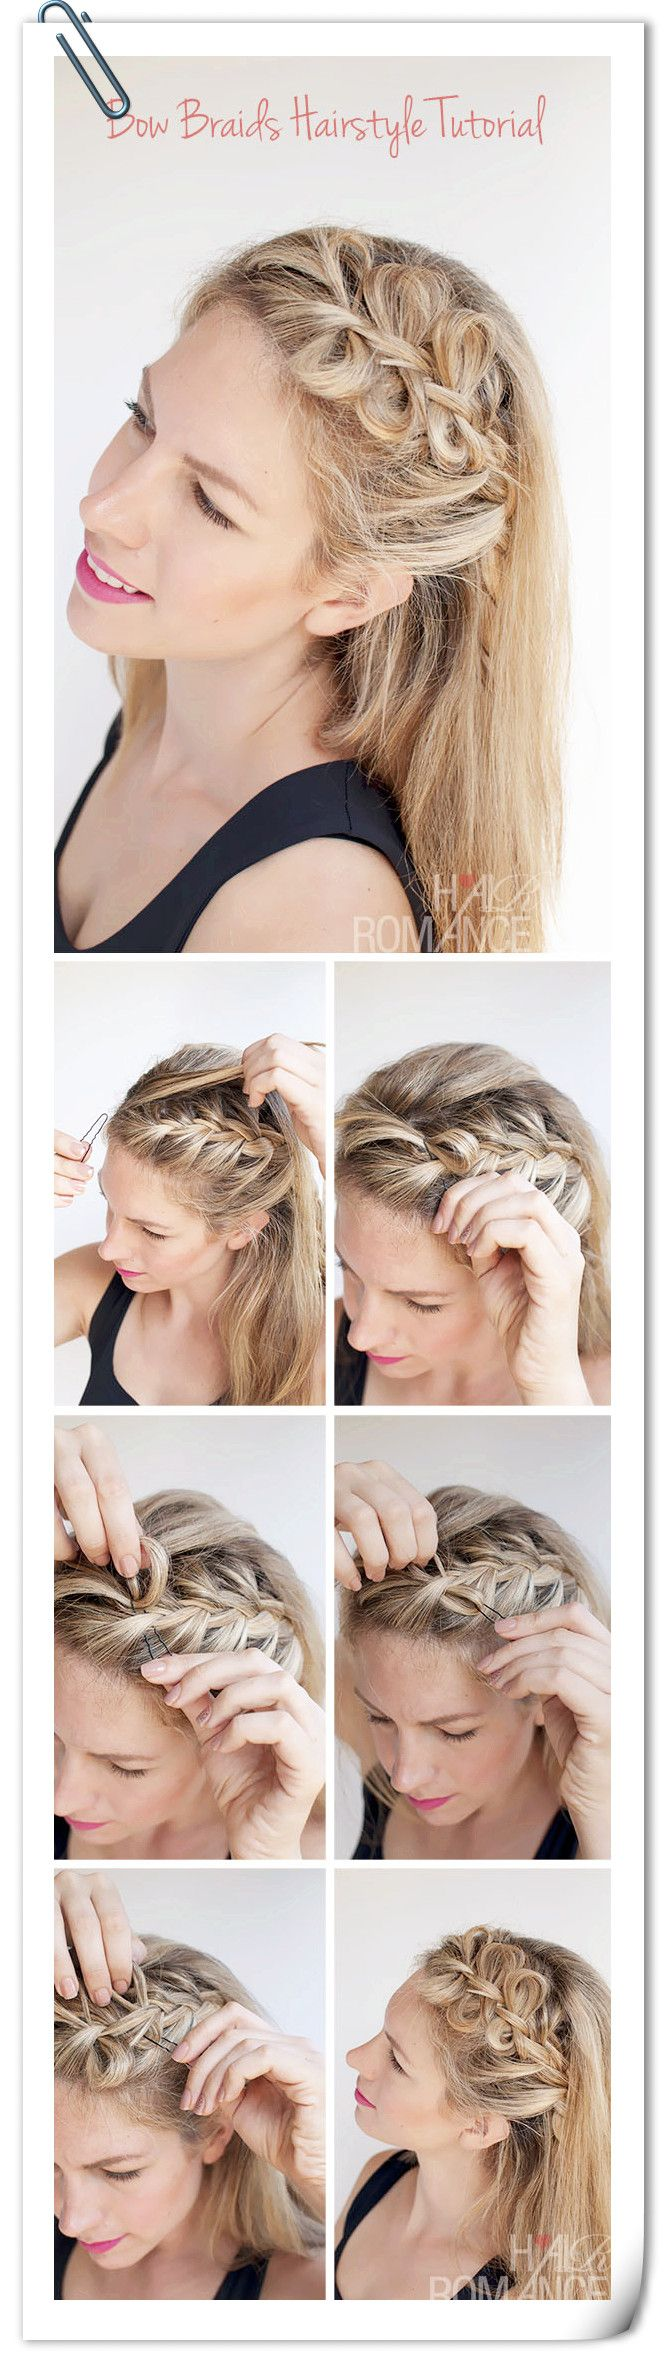 Simple fro bow braid hairstyling for vacation :)